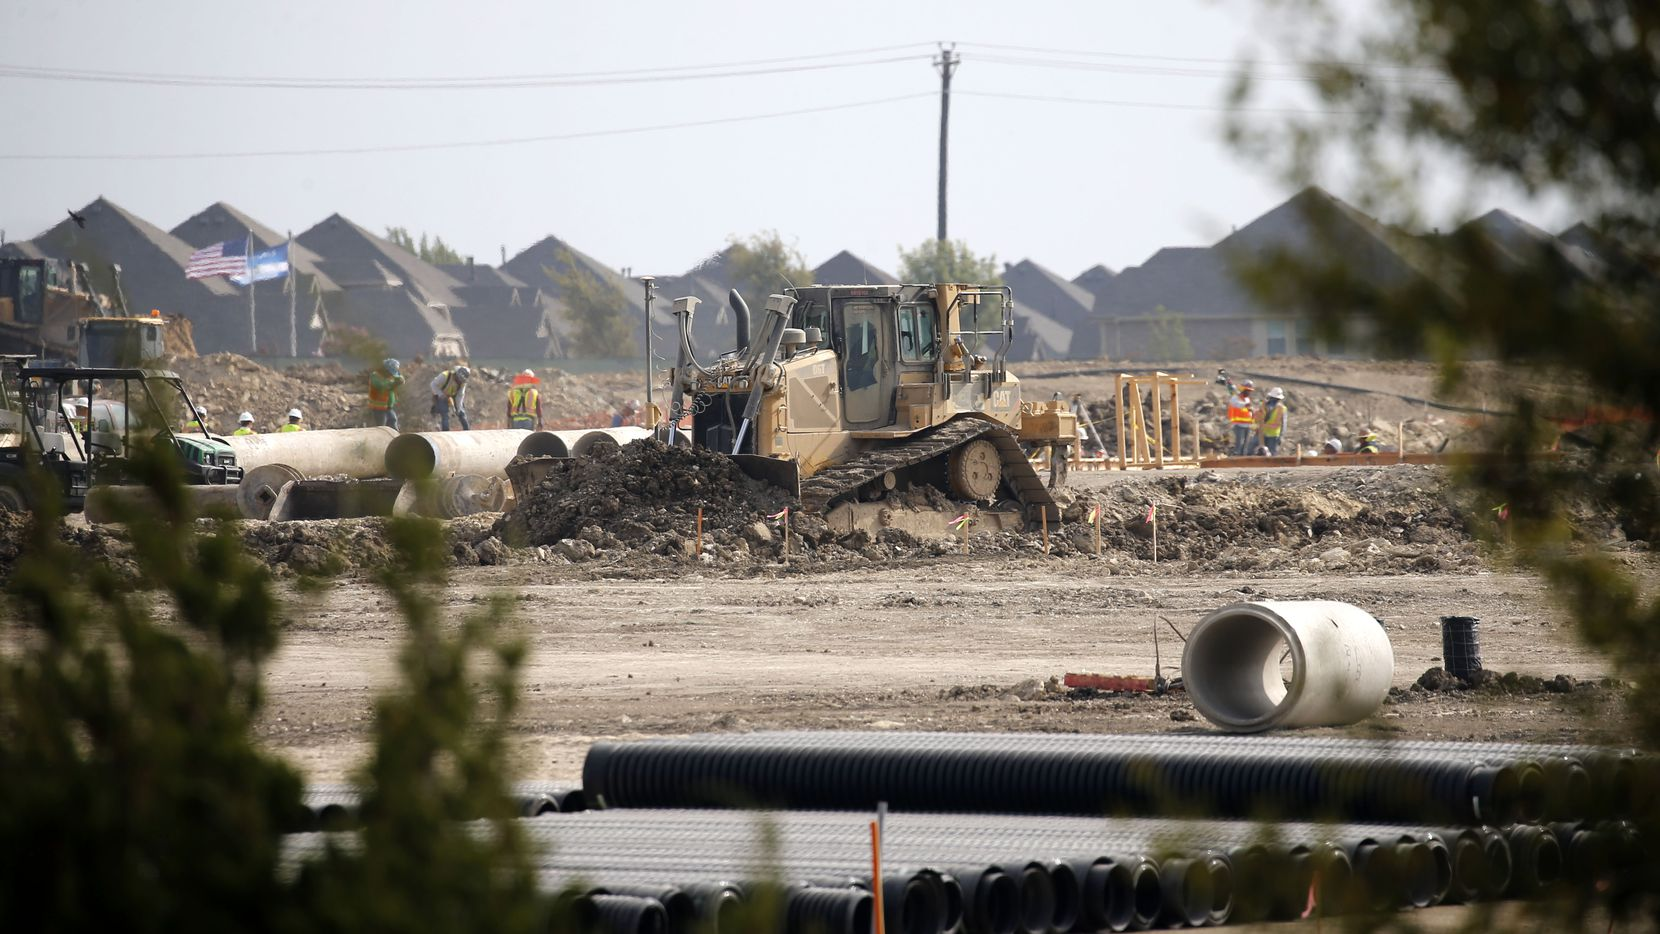 Construction began in September for Emerson High School, which will be the Frisco school district's 11th high school. The campus is near the intersection of Collin McKinney Parkway and Stacy Road in McKinney. (Vernon Bryant/The Dallas Morning News)